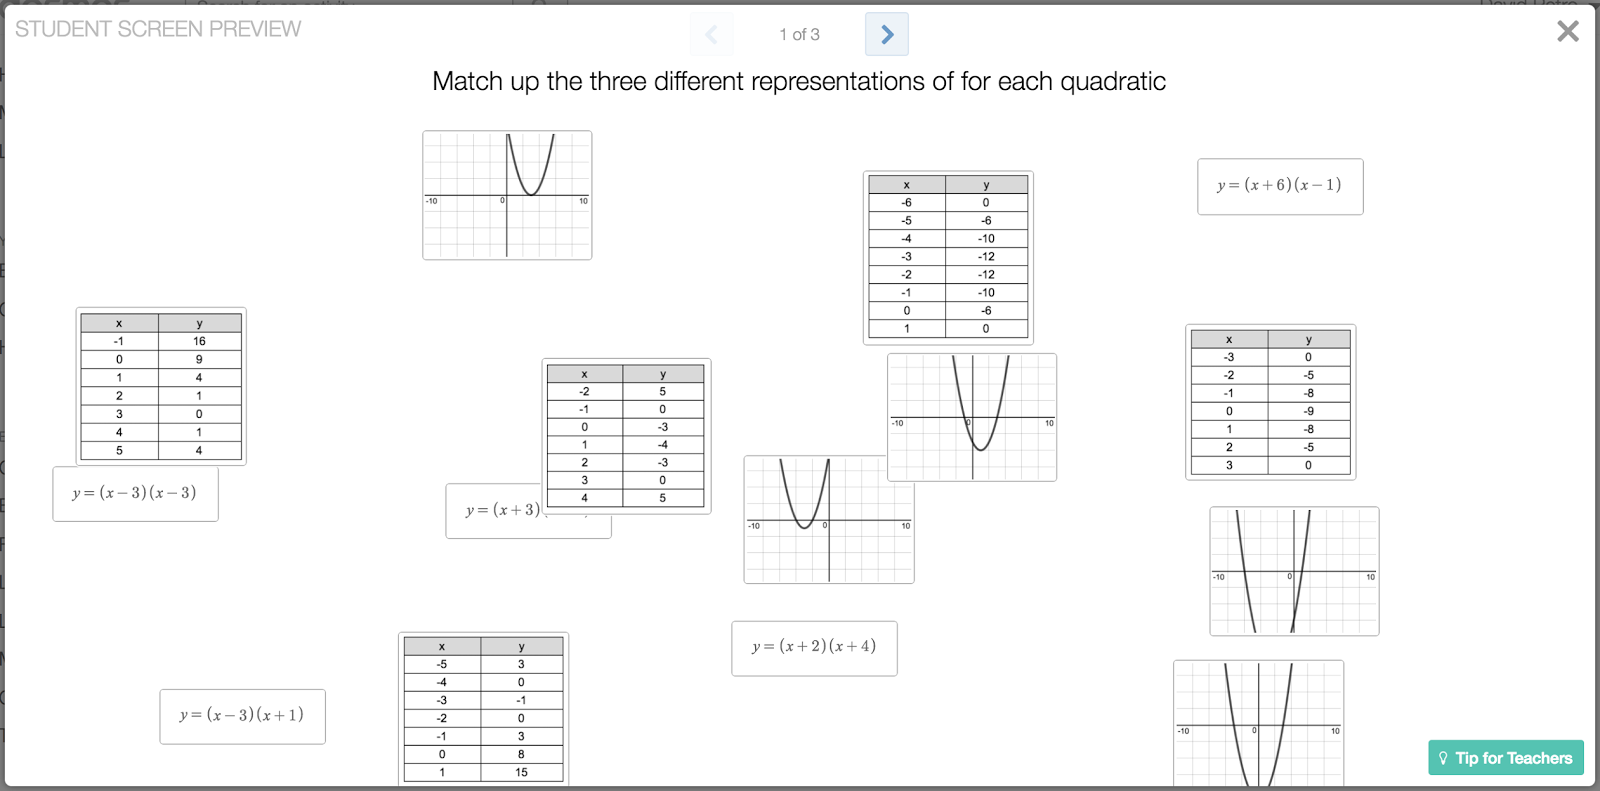 Engaging Math Sort Students Into Groups Using Quadratic Representations